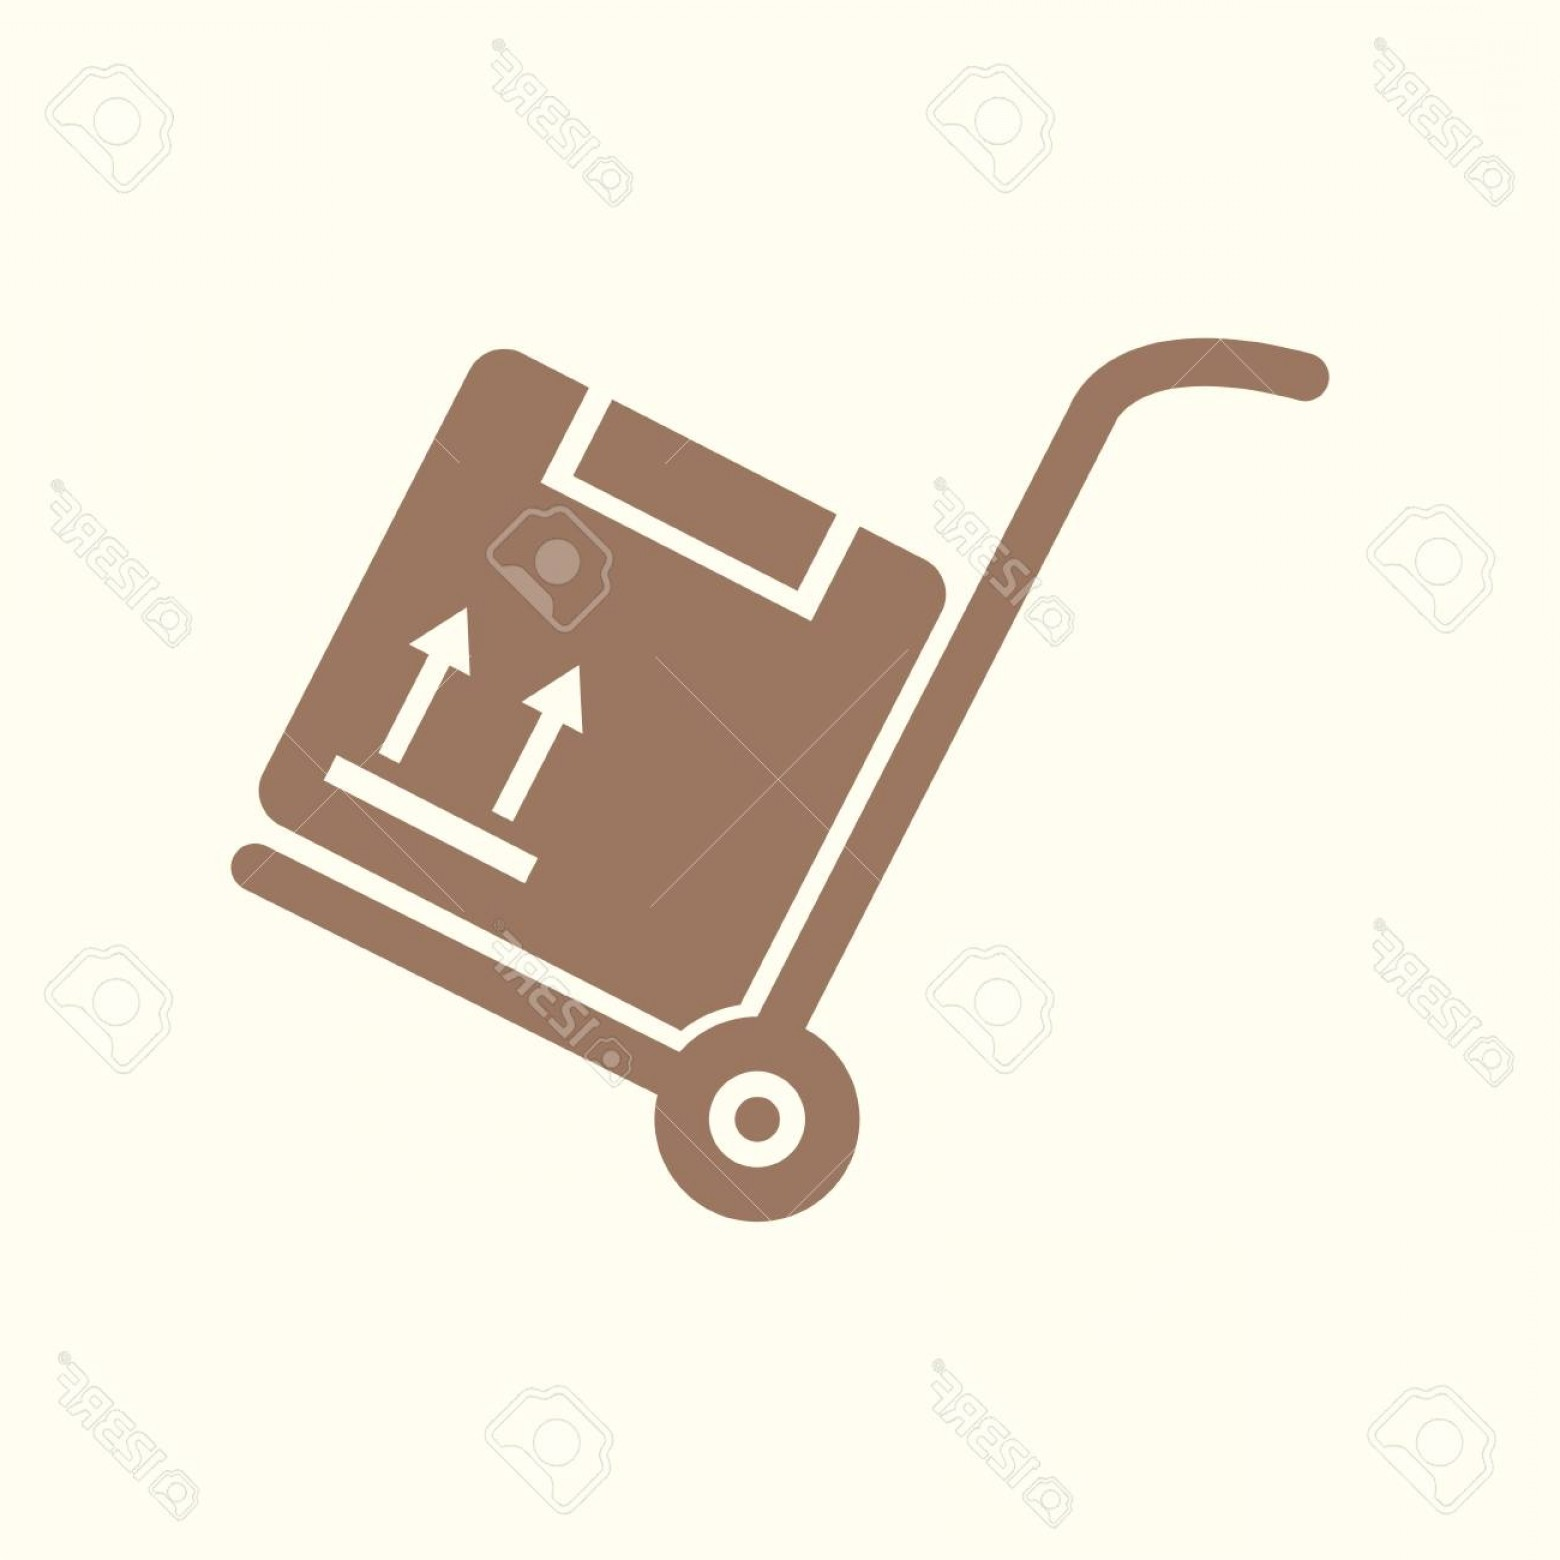 Hand Cart Silhouette Vectors: Photostock Vector A Flat Art Of Hand Truck And Box Sign Symbol On Silhouette Illustration